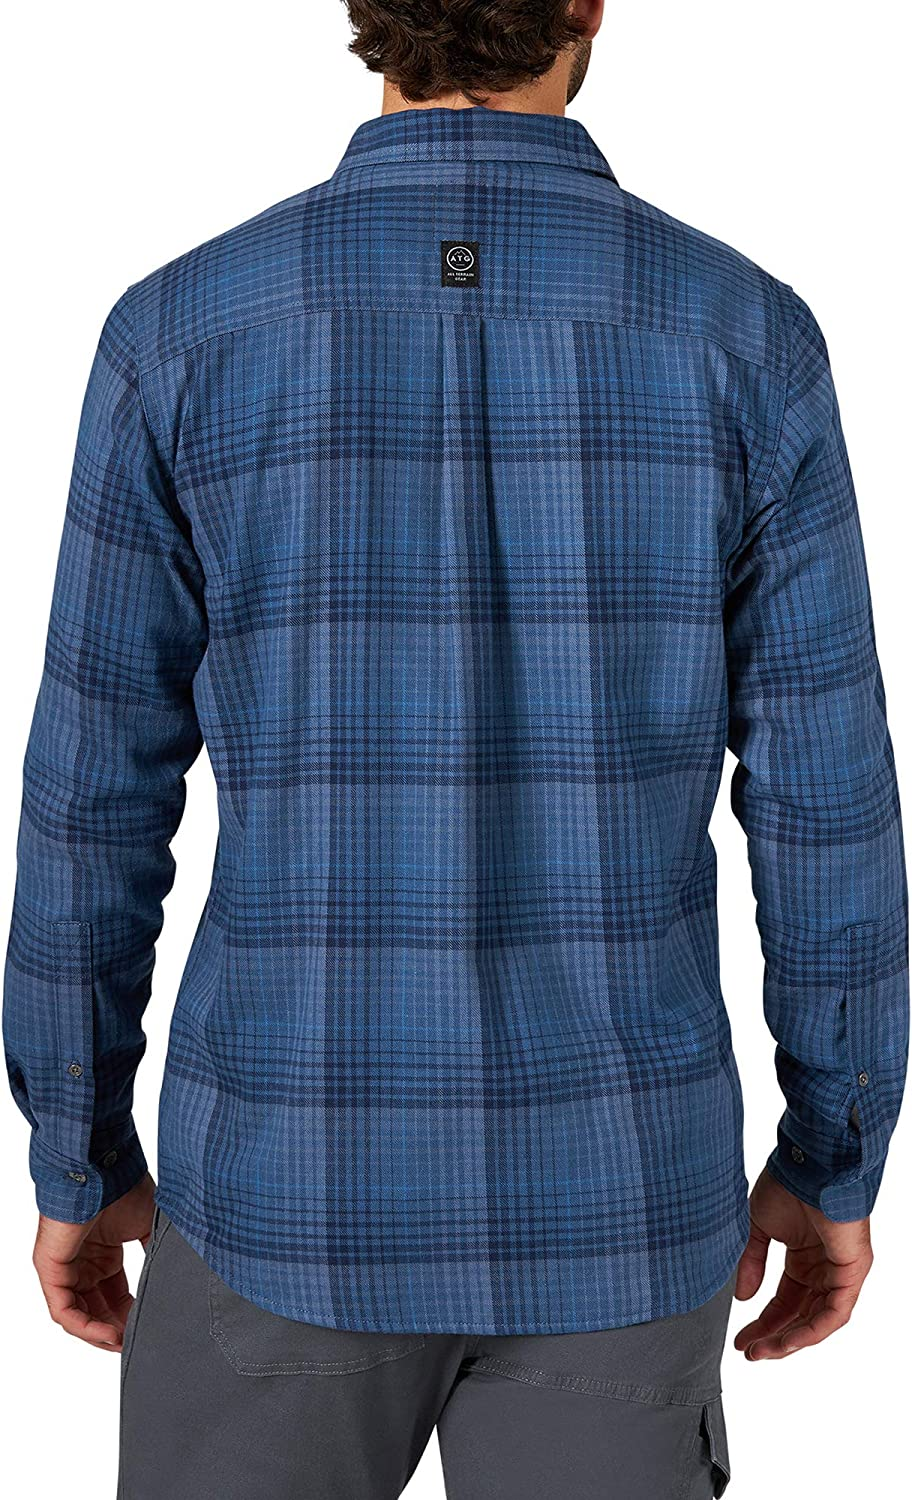 ATG by Wrangler Mens Thermal Lined Flannel Shirt